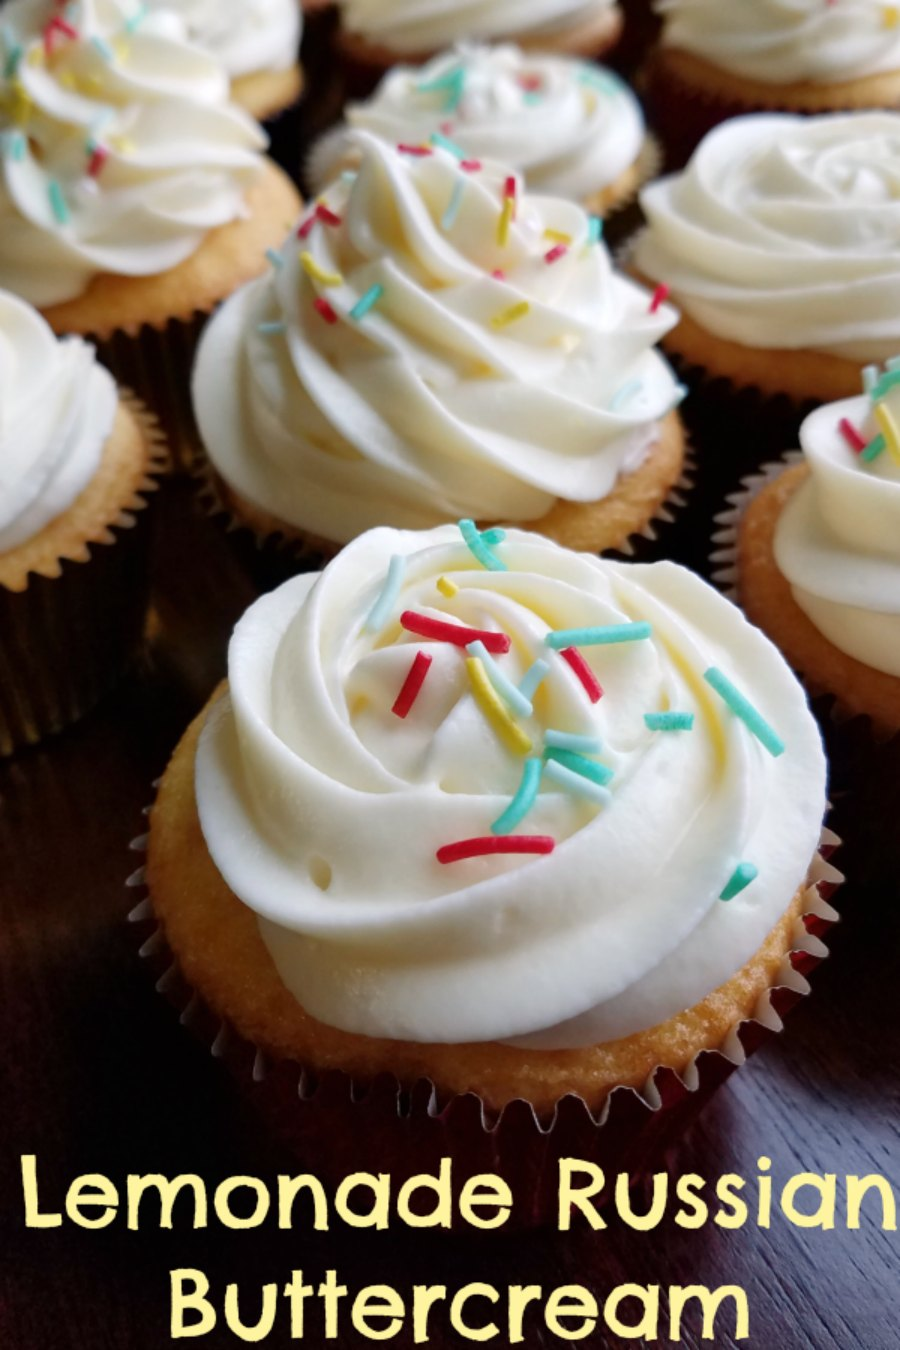 This silky smooth Russian buttercream is made with sweetened condensed milk and flavored with lemonade. Pipe some on lemon cupcakes for an luscious lemon treat!